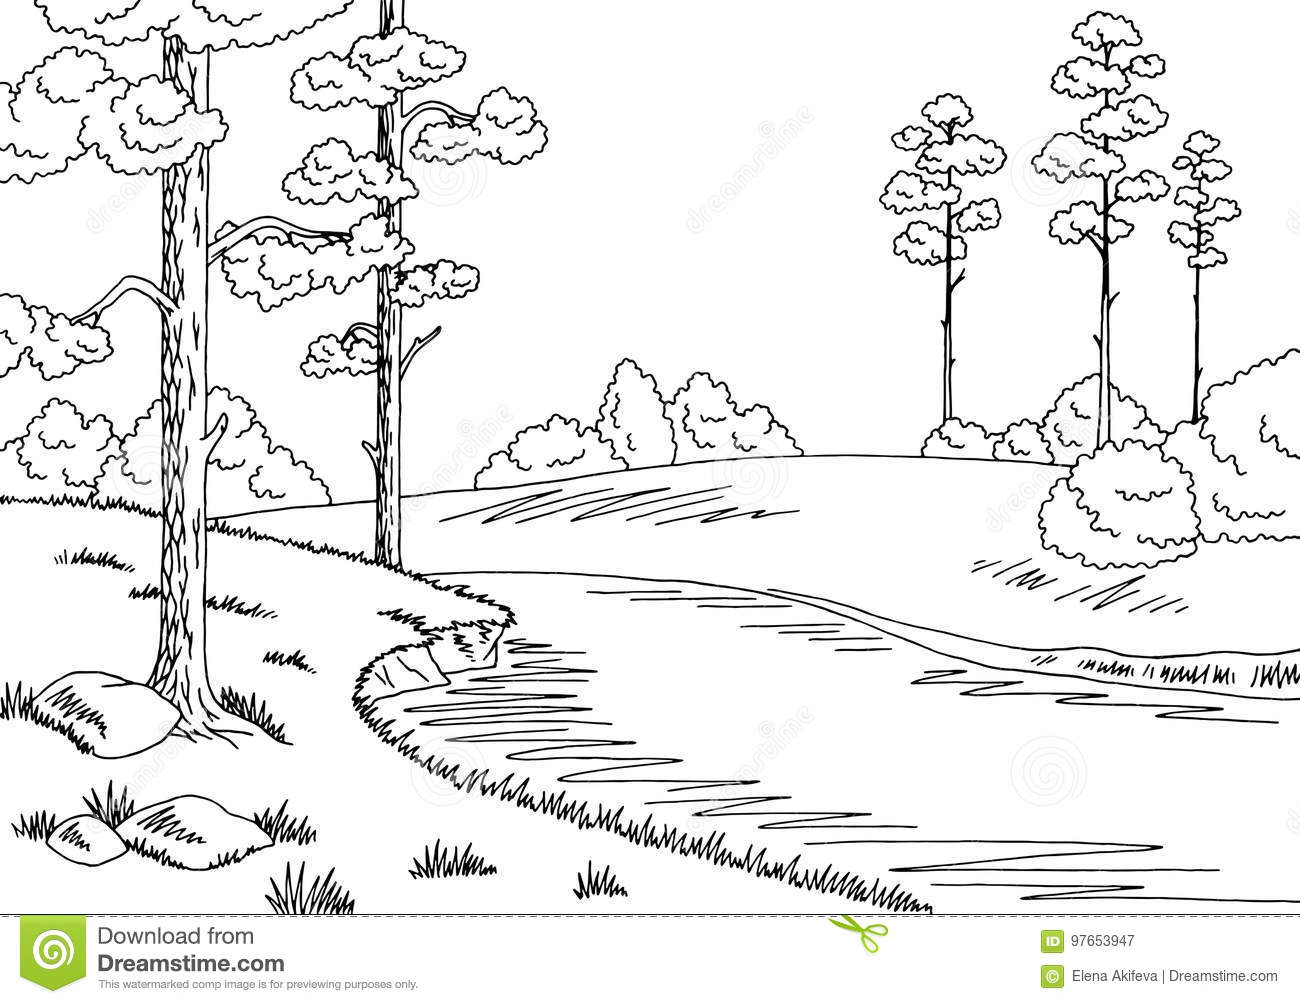 river black white stock illustrations 18 656 river black white stock illustrations vectors clipart dreamstime https www dreamstime com stock illustration forest river graphic black white landscape sketch illustration vector image97653947